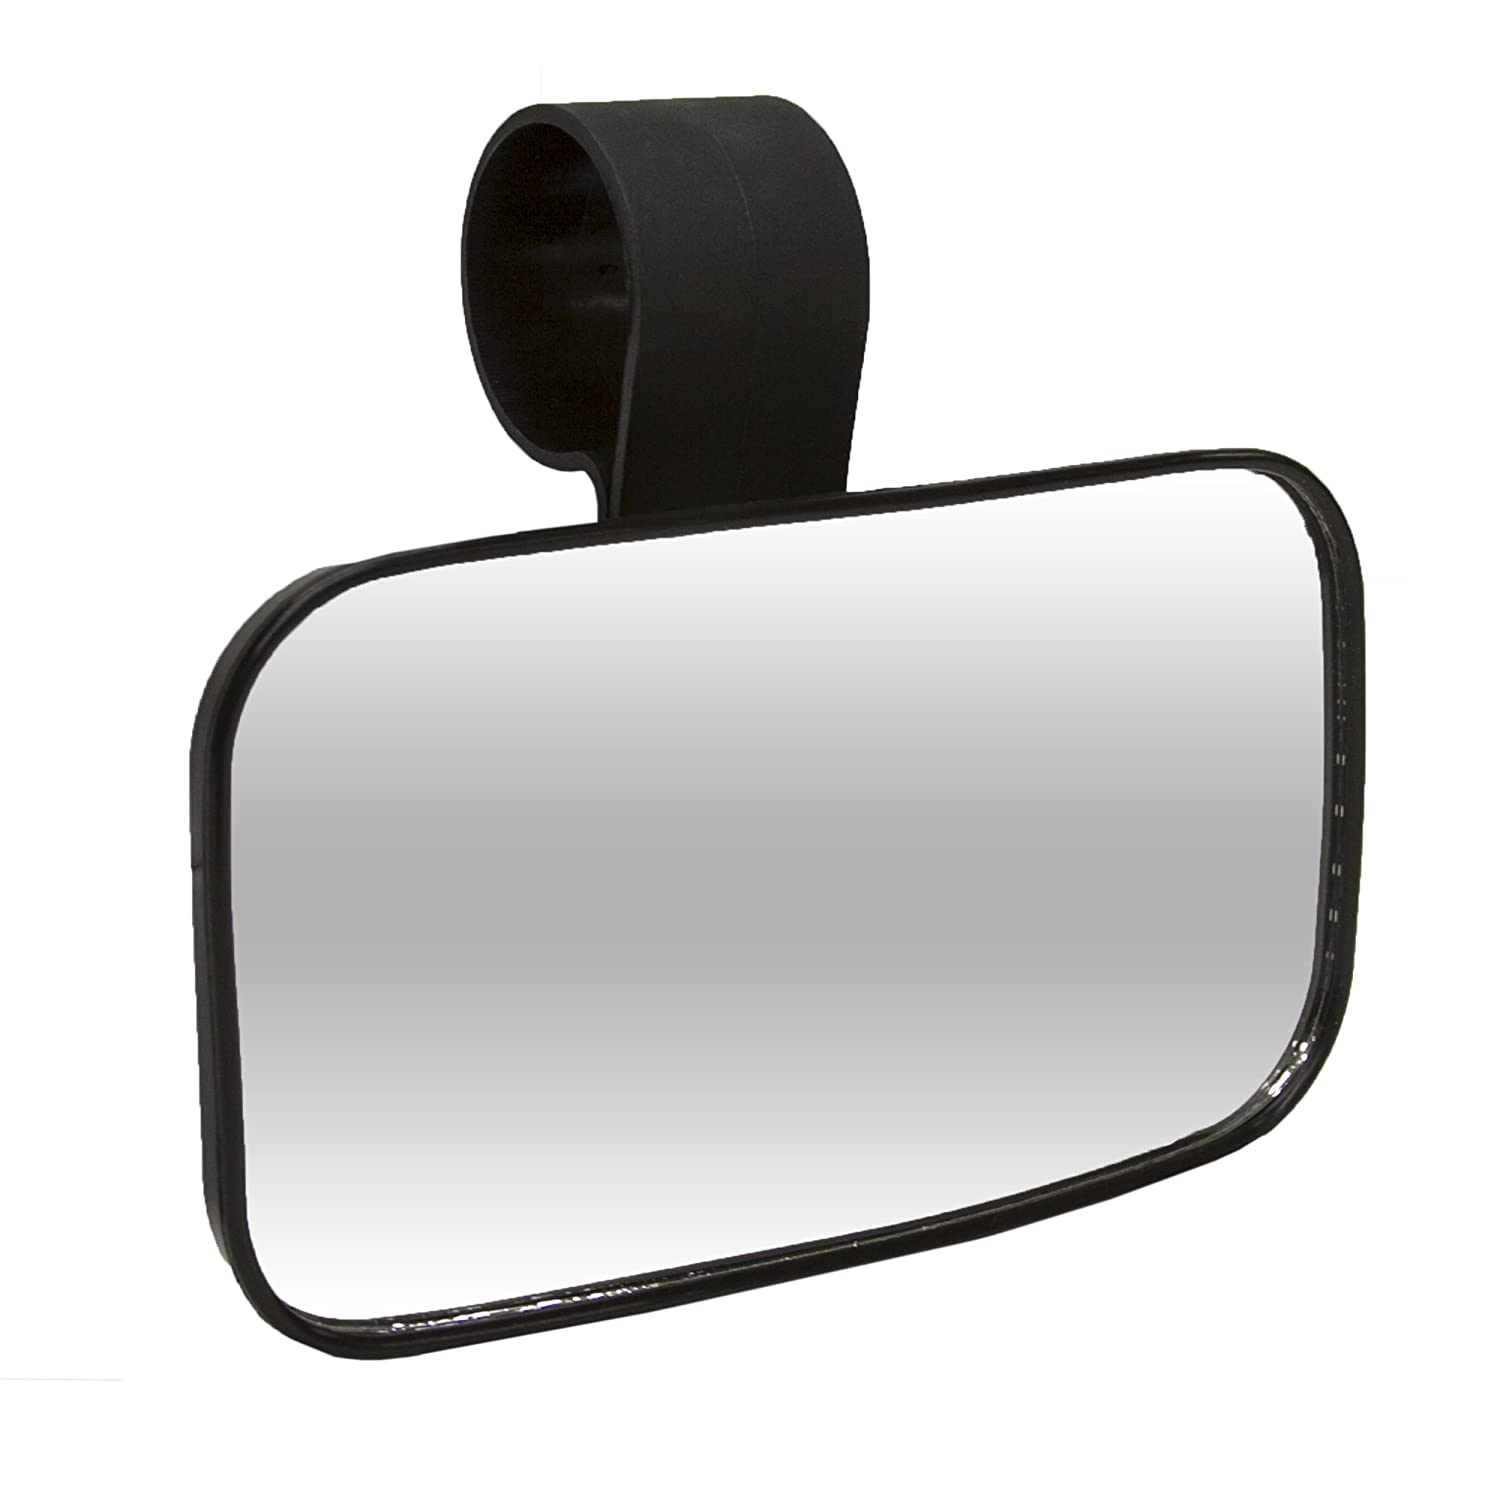 UTV Rear Mirror Kolpin 98310